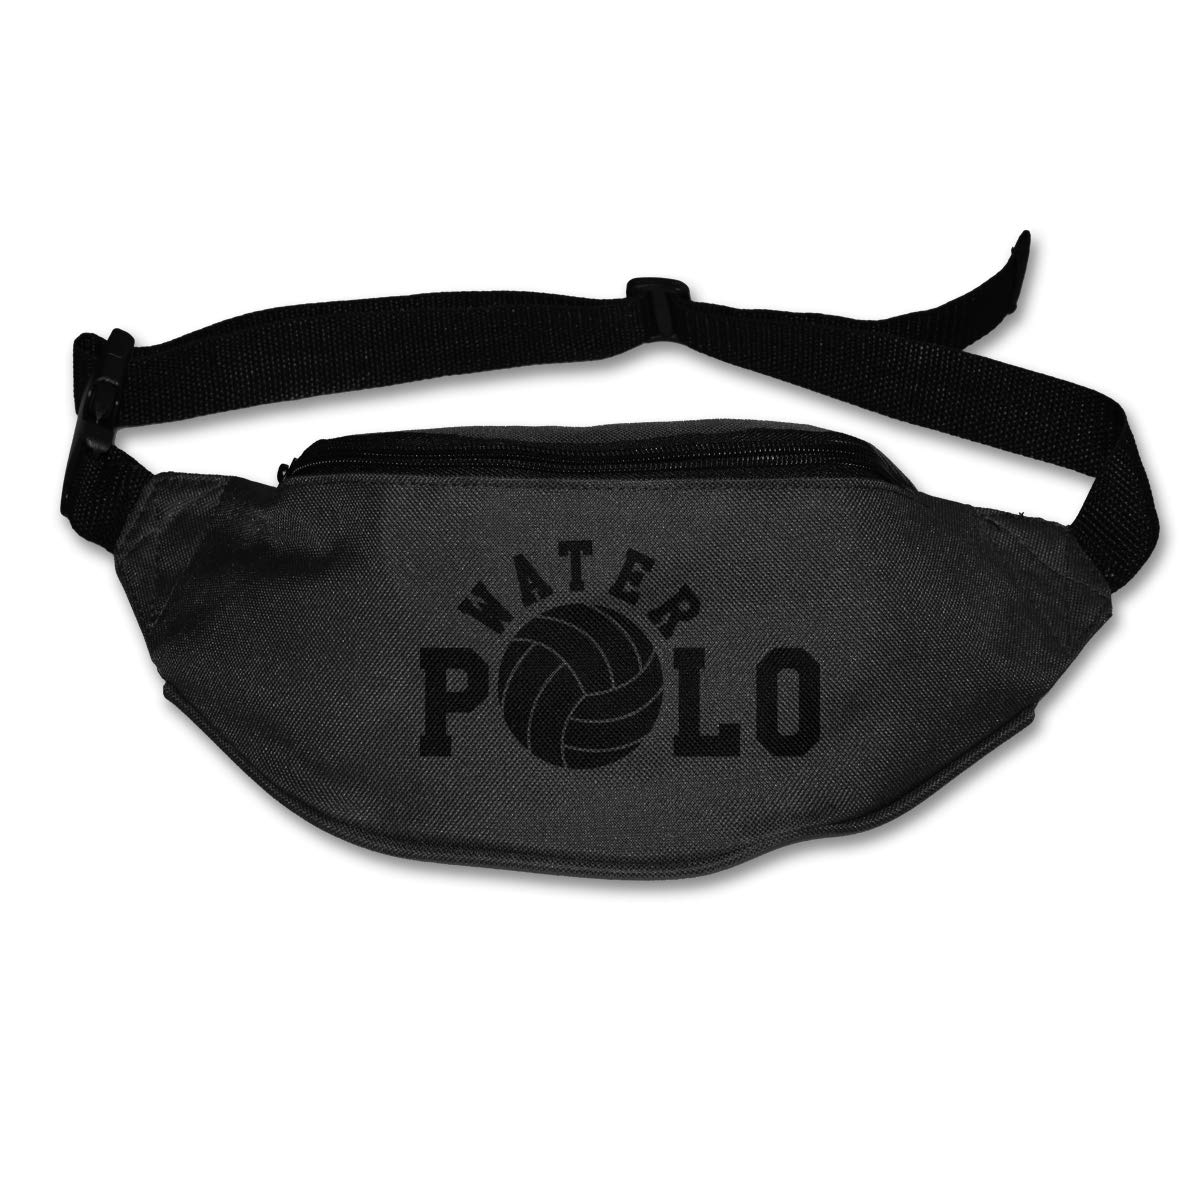 Water Polo Sport Waist Bag Fanny Pack Adjustable For Travel